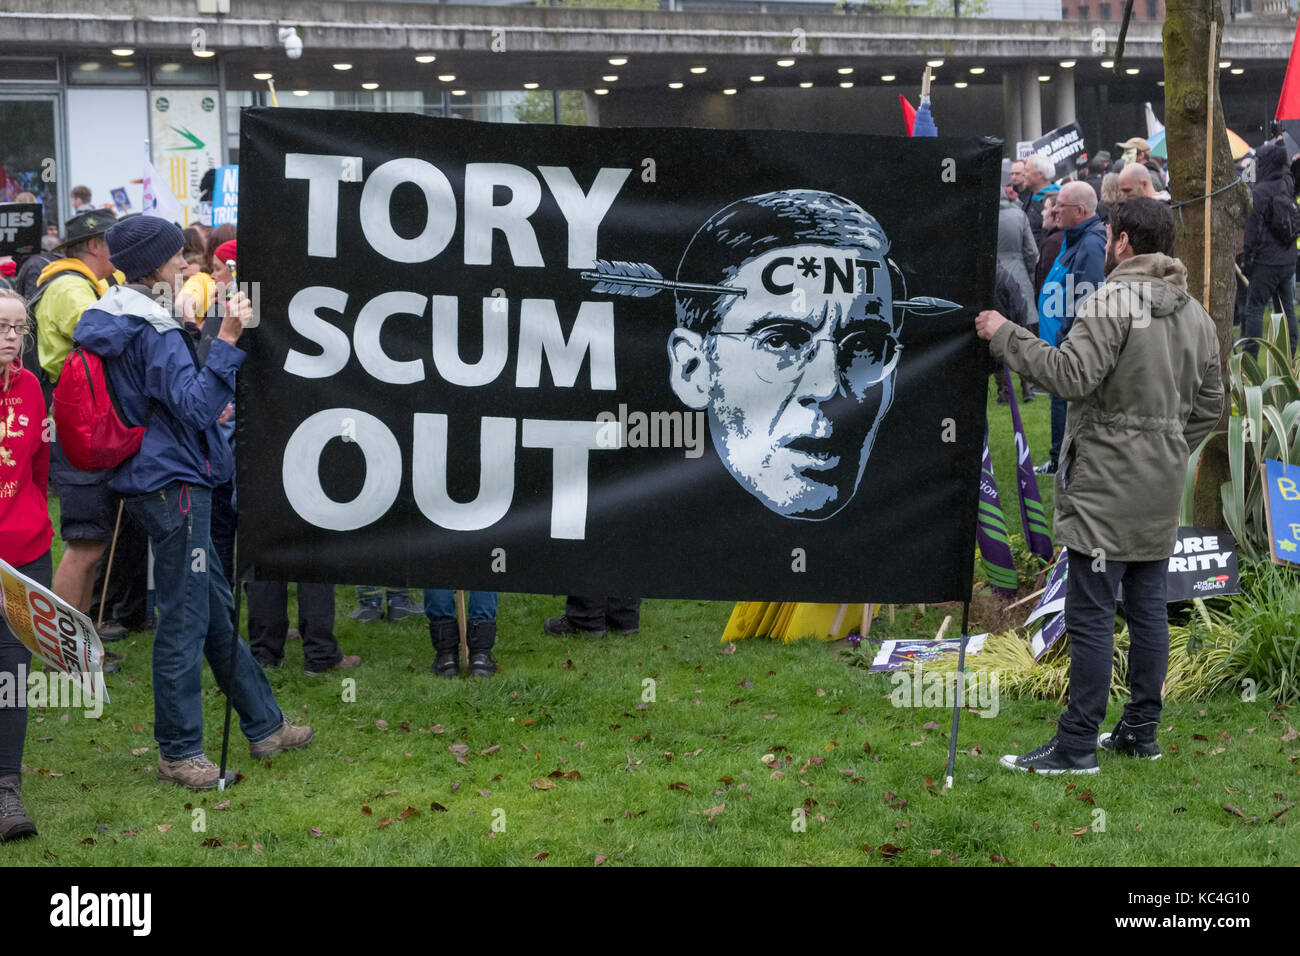 Manchester, UK. 1st Oct, 2017. A large anti austerity demonstration taking place during the Conservative Party Conference - Stock Image